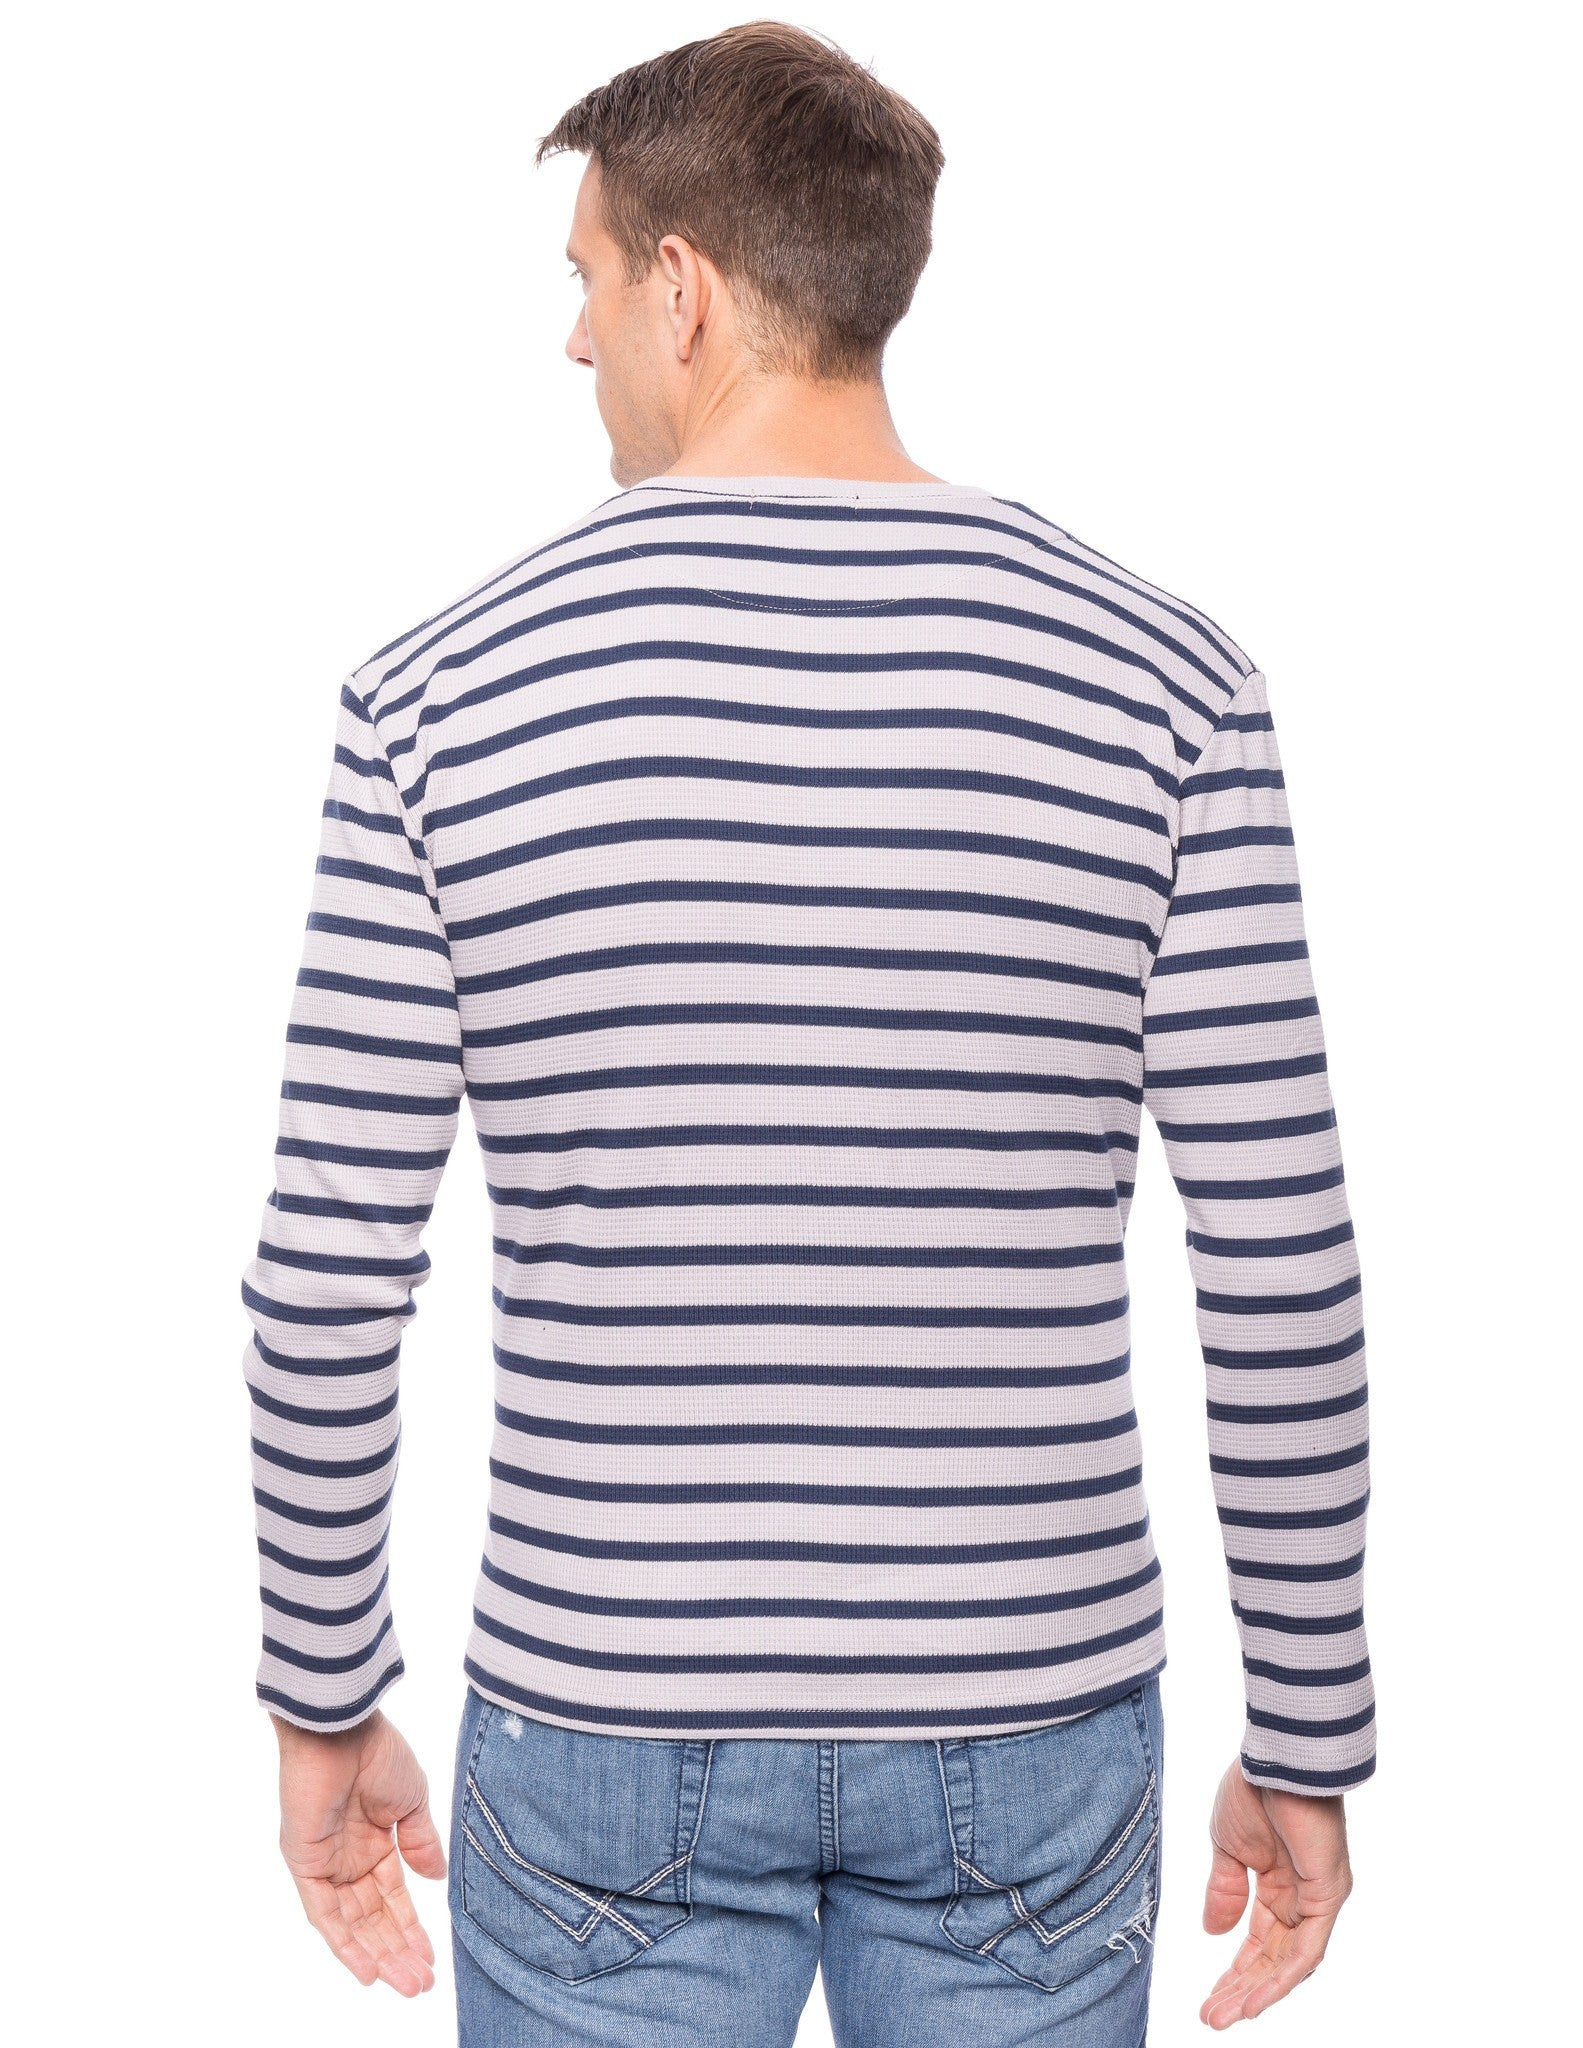 Stripes Heather Grey/Navy